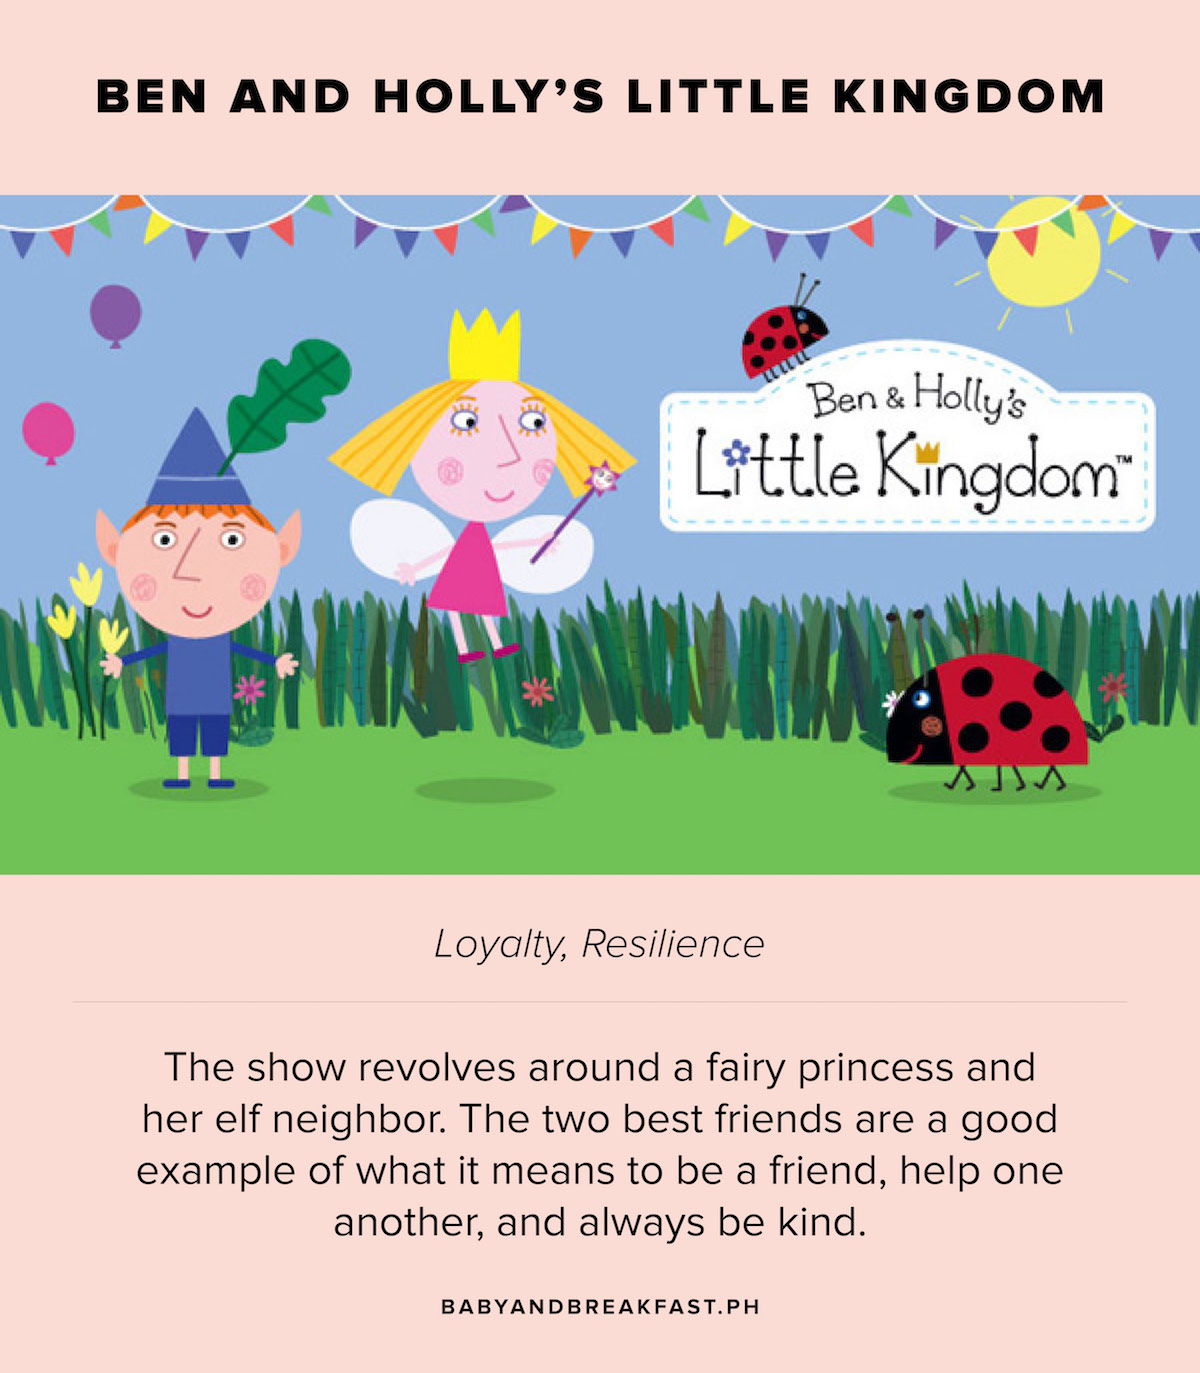 Ben and Holly's Little Kingdom Loyalty, Resilience The show revolves around a fairy princess and her elf neighbor. The two best friends are a good example of what it means to be a good friend, help one another, and always be kind.